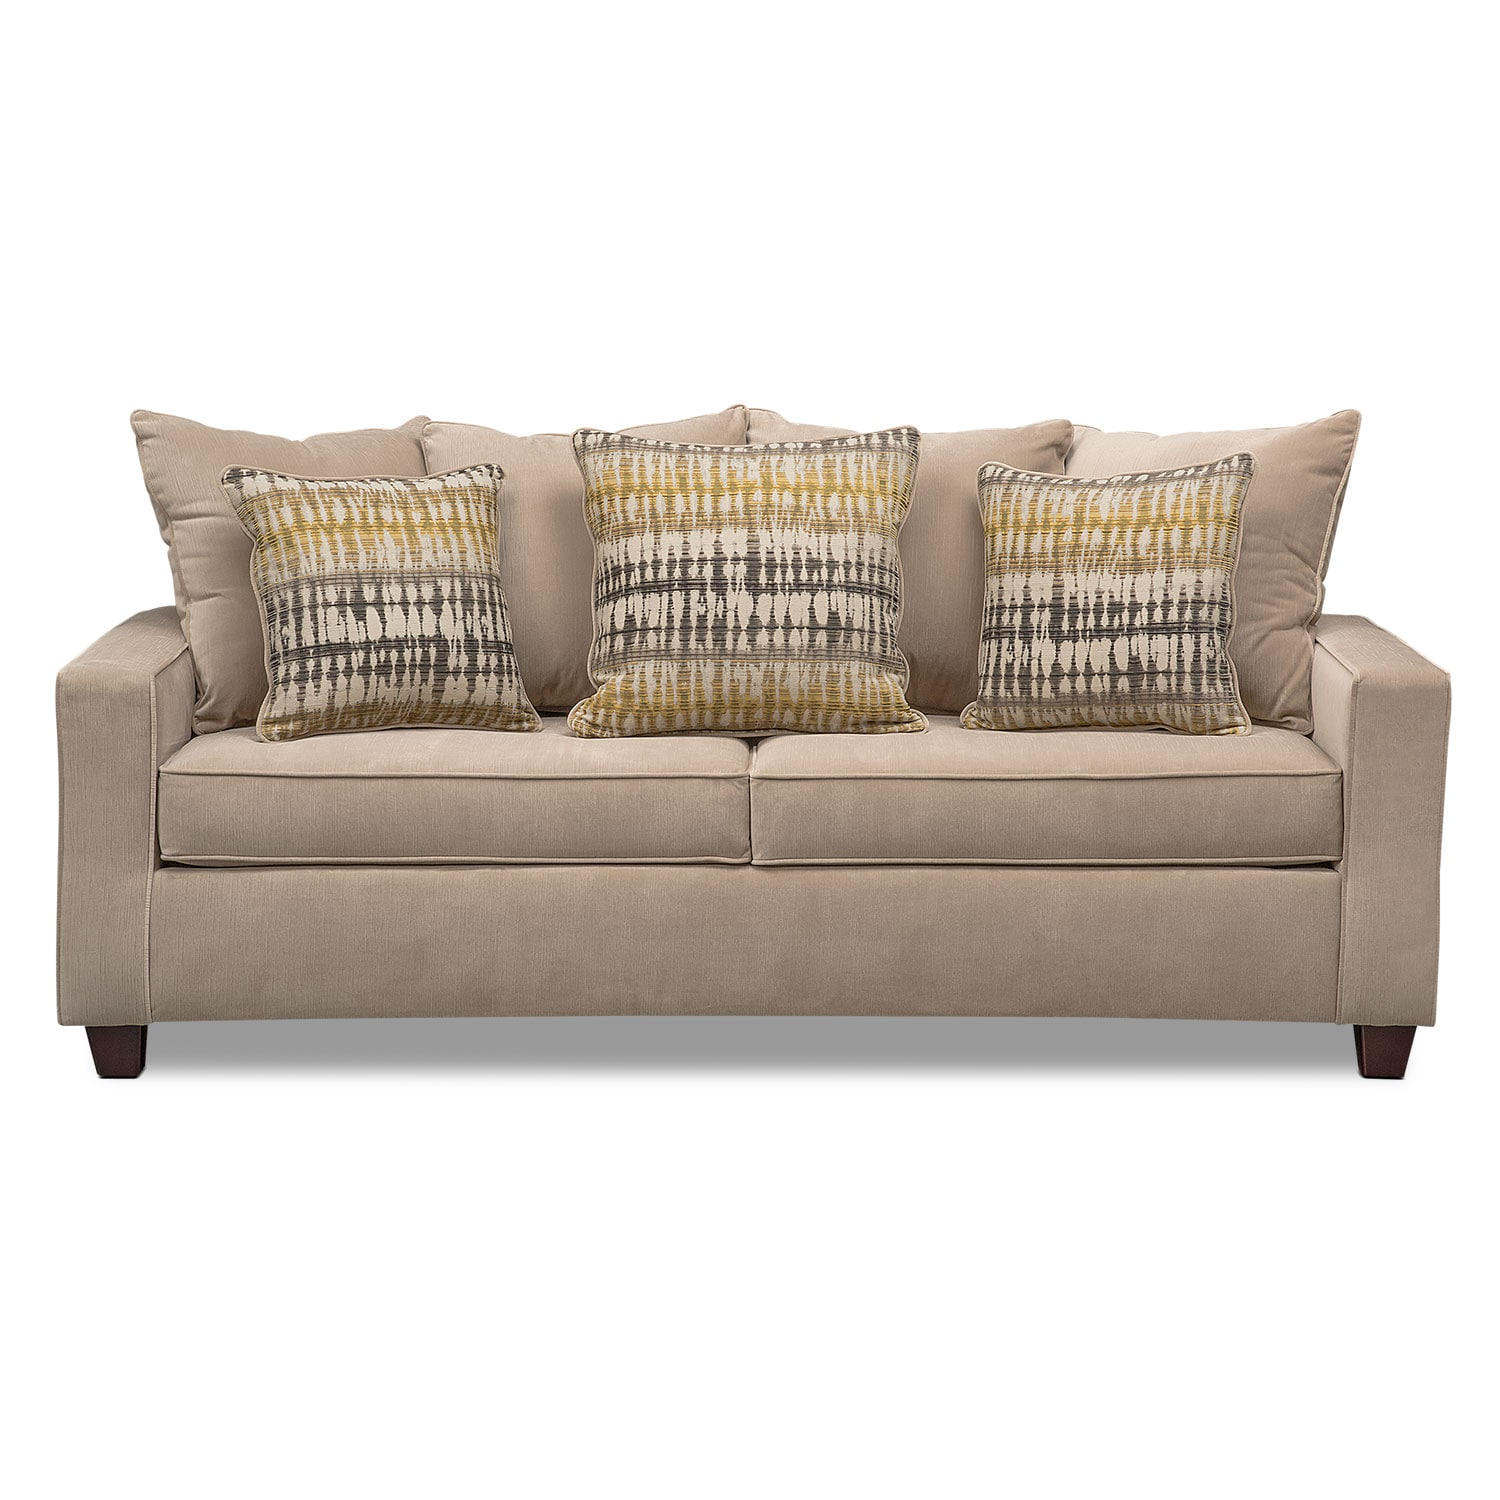 Bryden Queen Innerspring Sleeper Sofa Beige